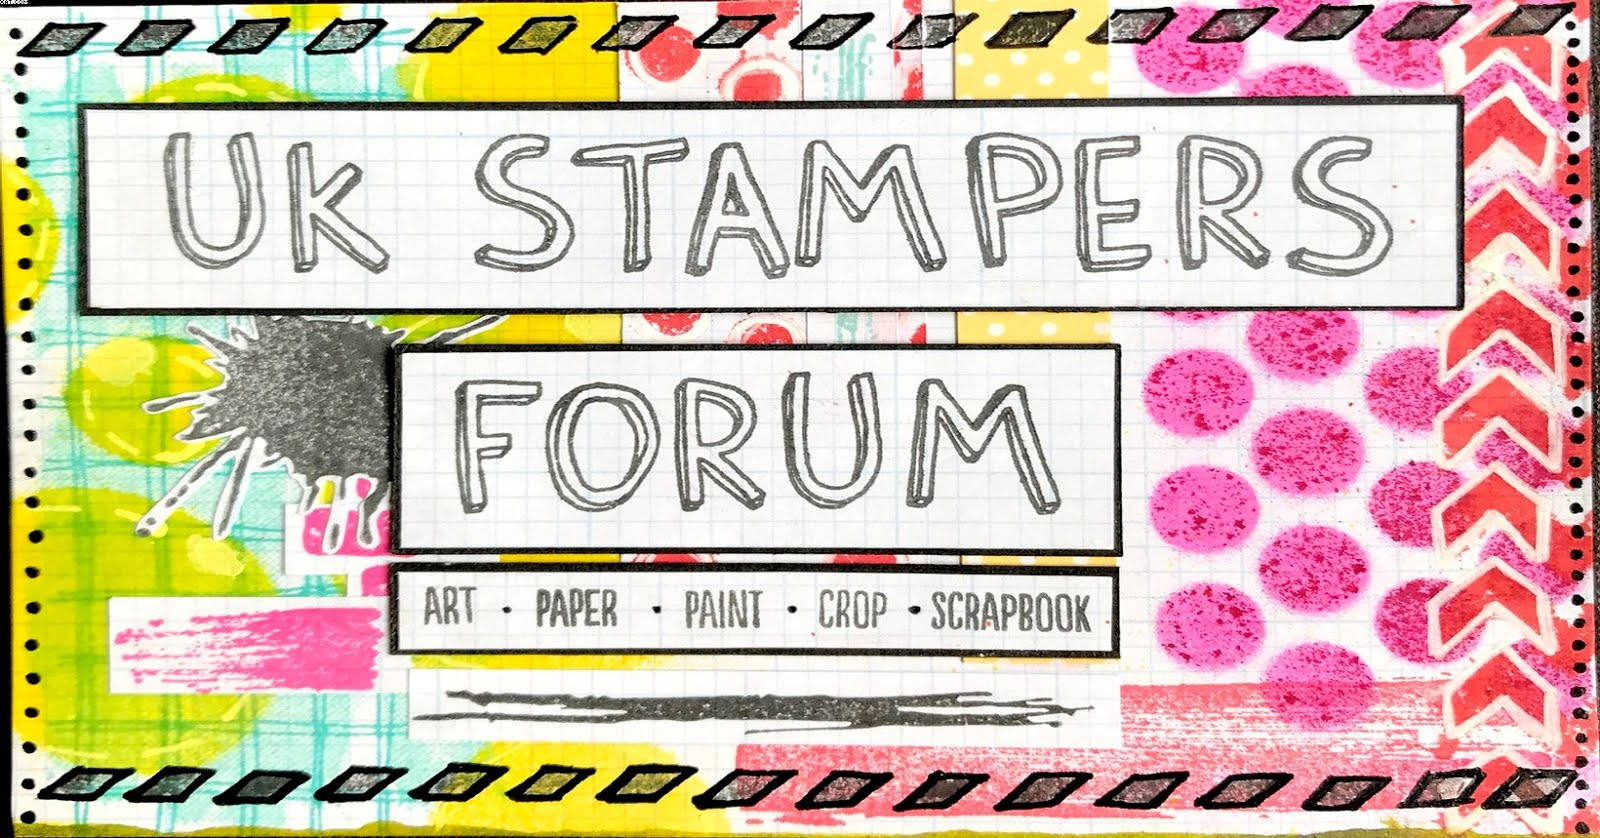 Why Not Join UK Stampers Forum, It's free, friendly & fun ....